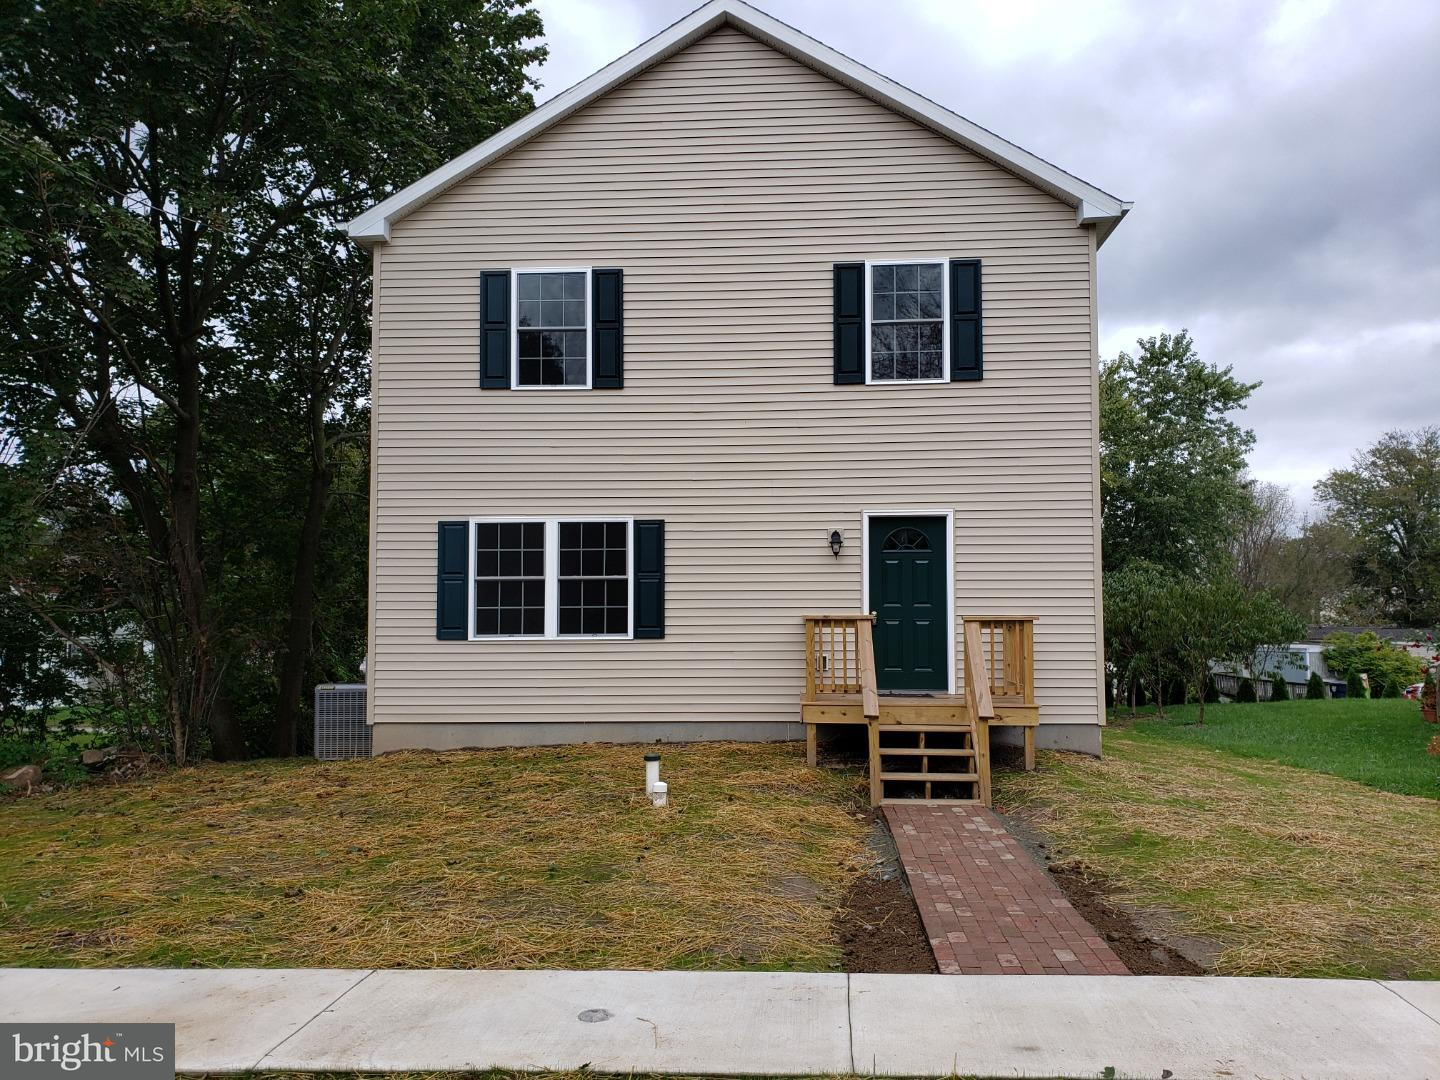 510 NEW ST, OXFORD - Listed at $229,900, OXFORD